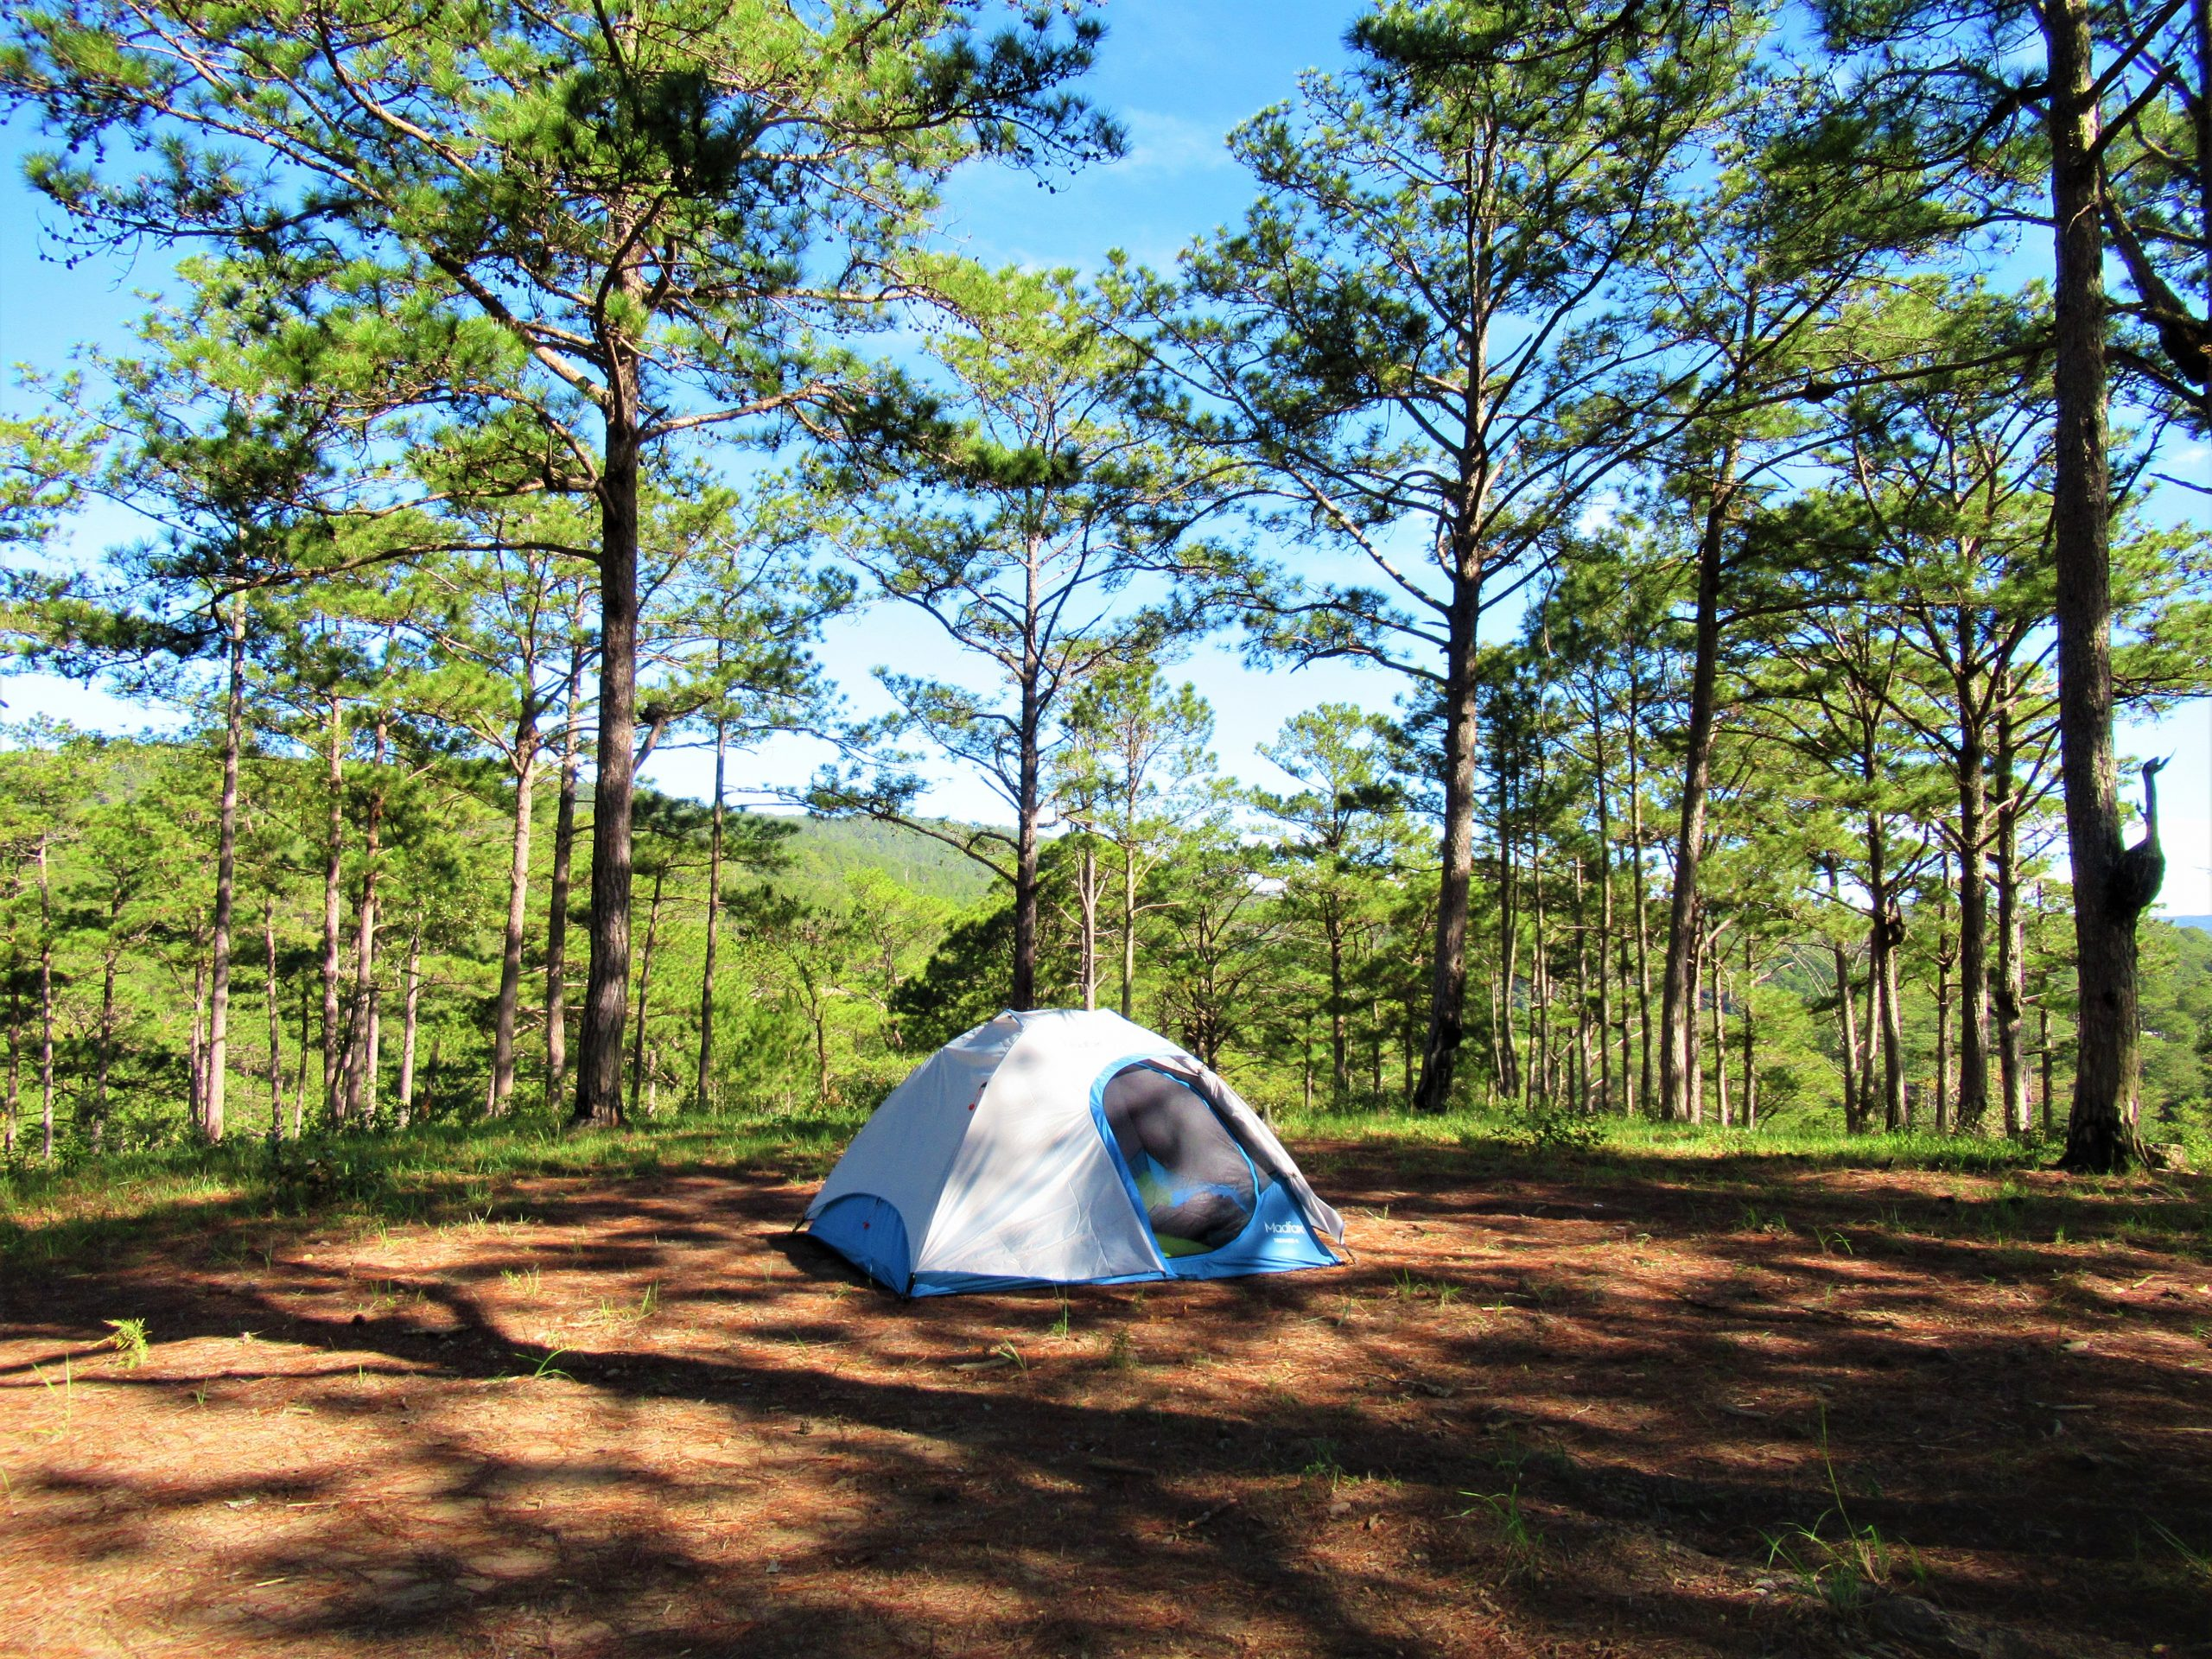 Camping in the pine forests north of Dalat, Vietnam